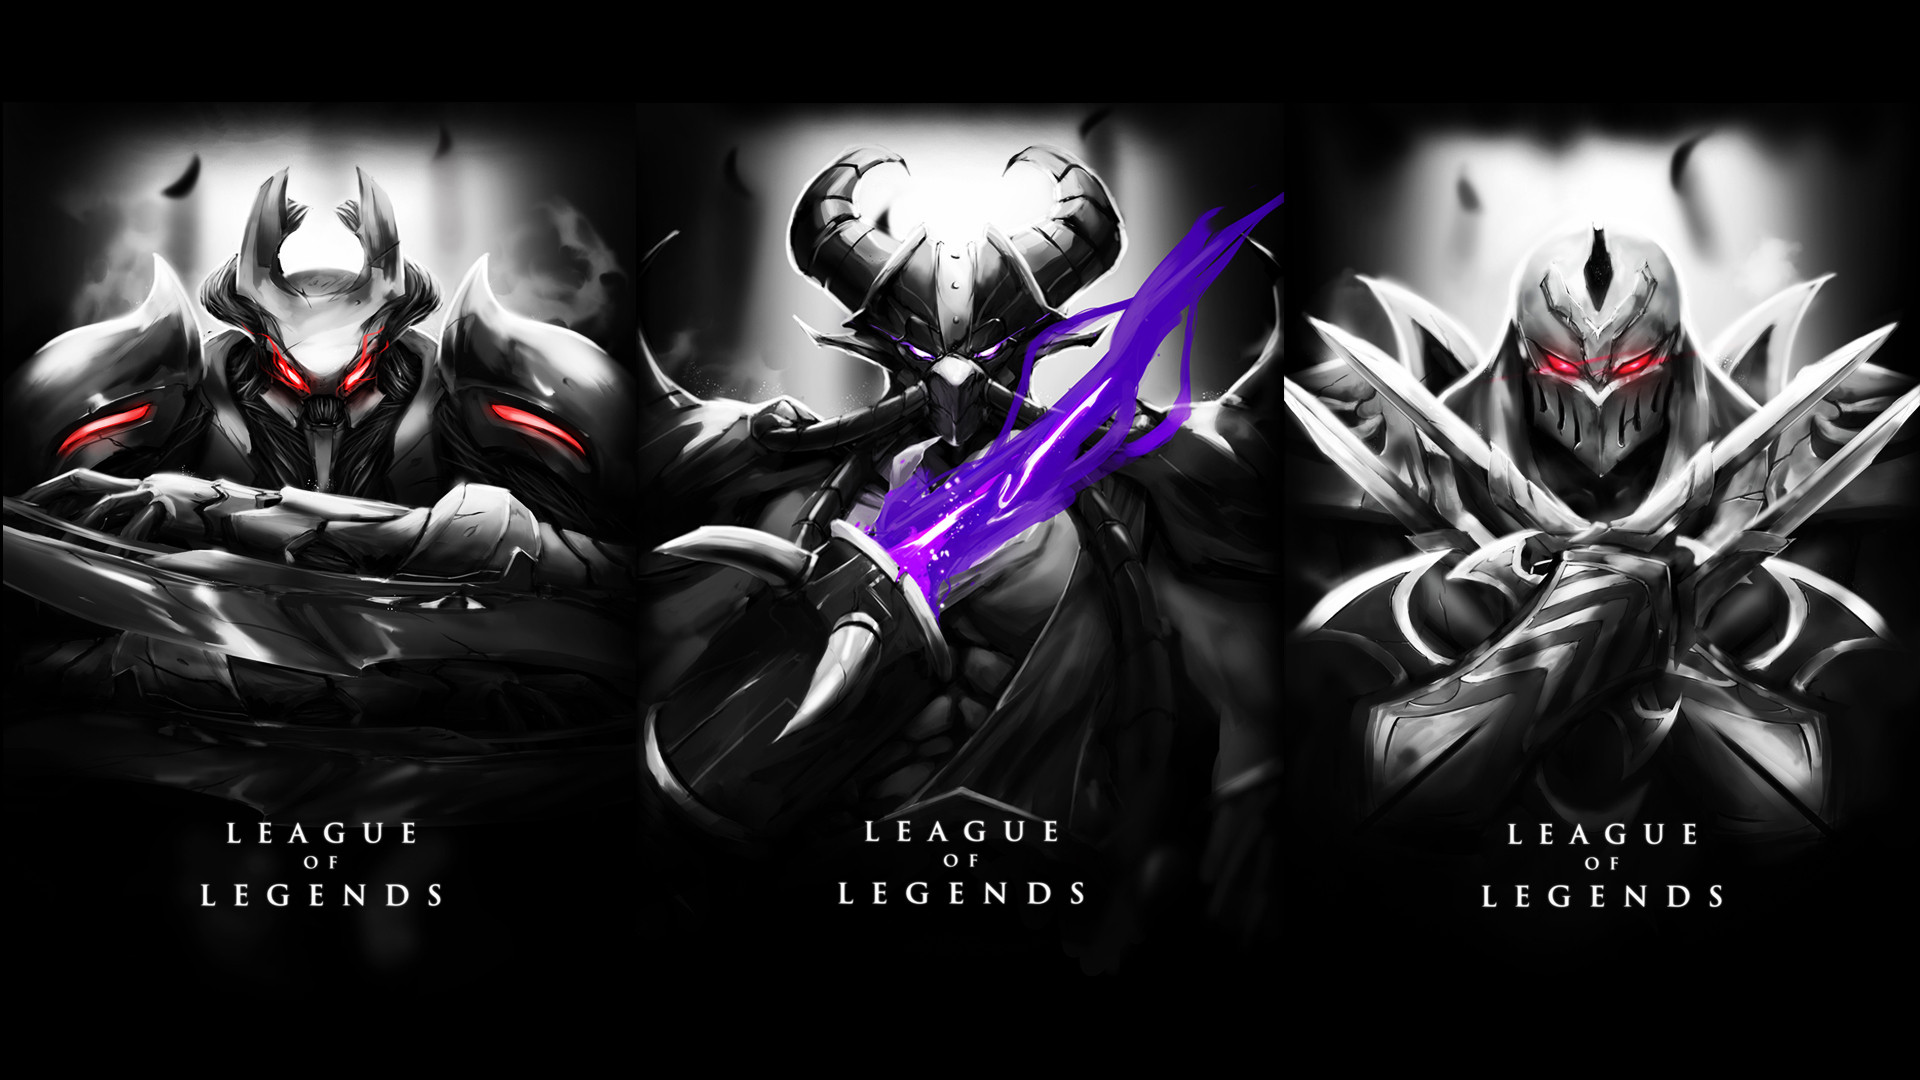 League of legends wallpaper pack - League Of Legends Best Video Game Wallpapers